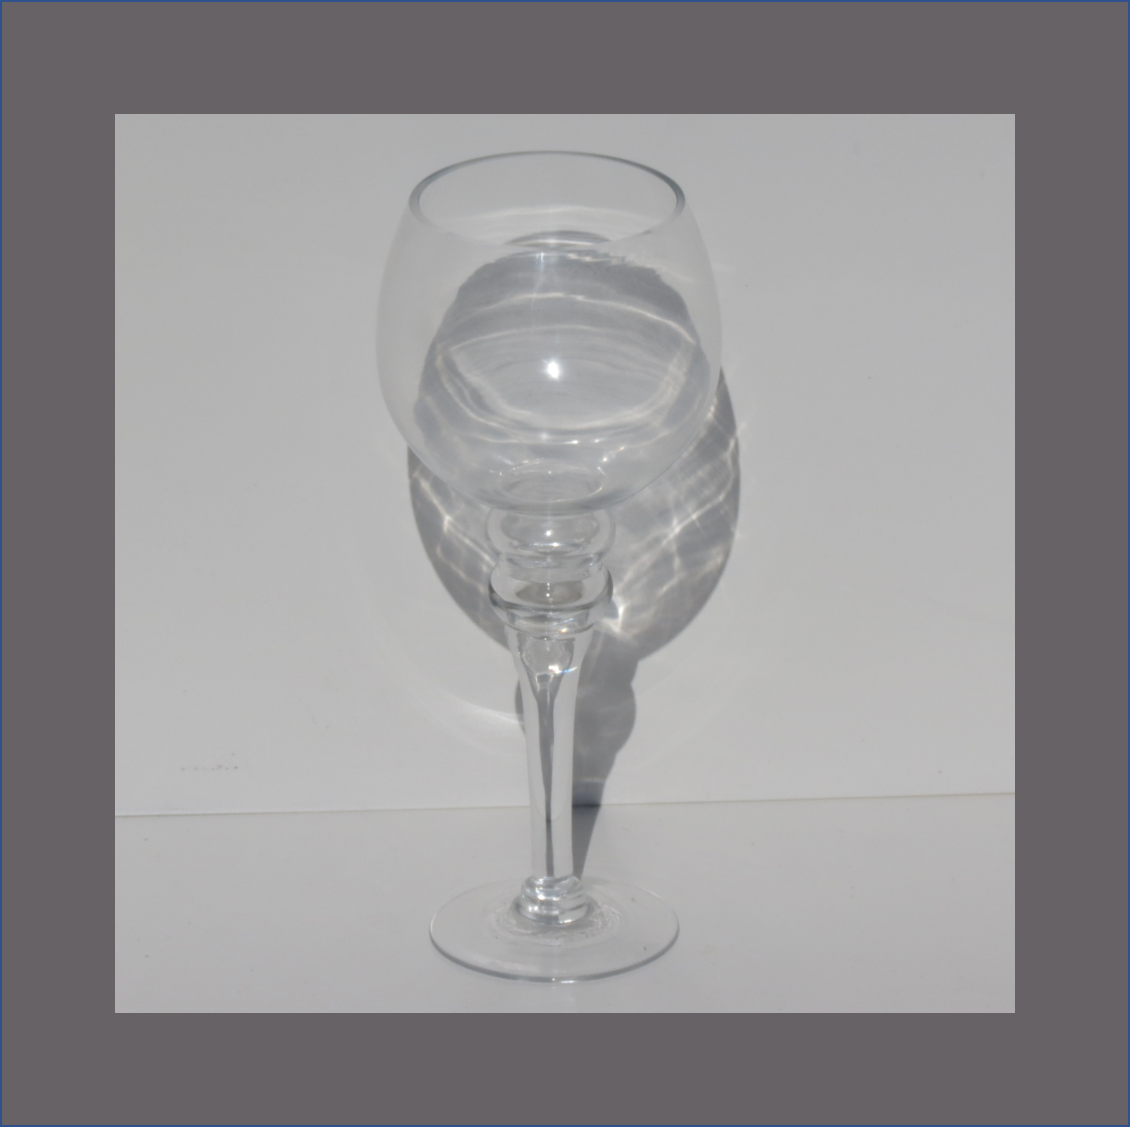 wine-glass-vase